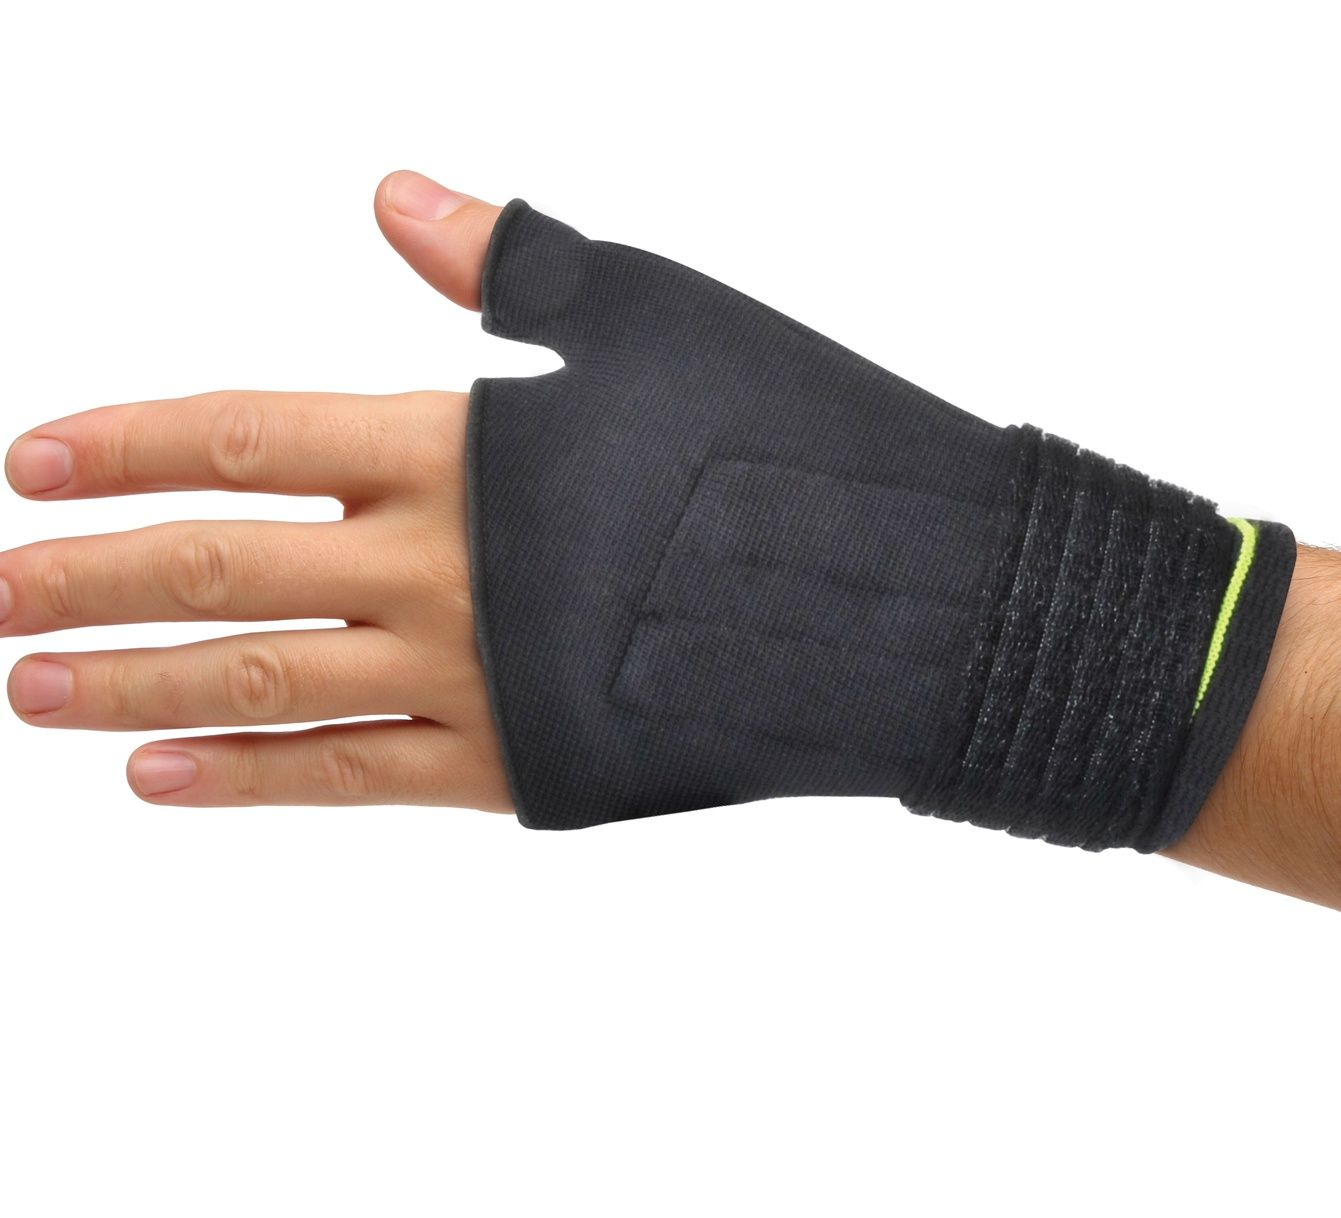 d547c913dc Magnetic Carpal Tunnel Gloves, Magnetic Hand & Wrist Brace | Auris Magnetic